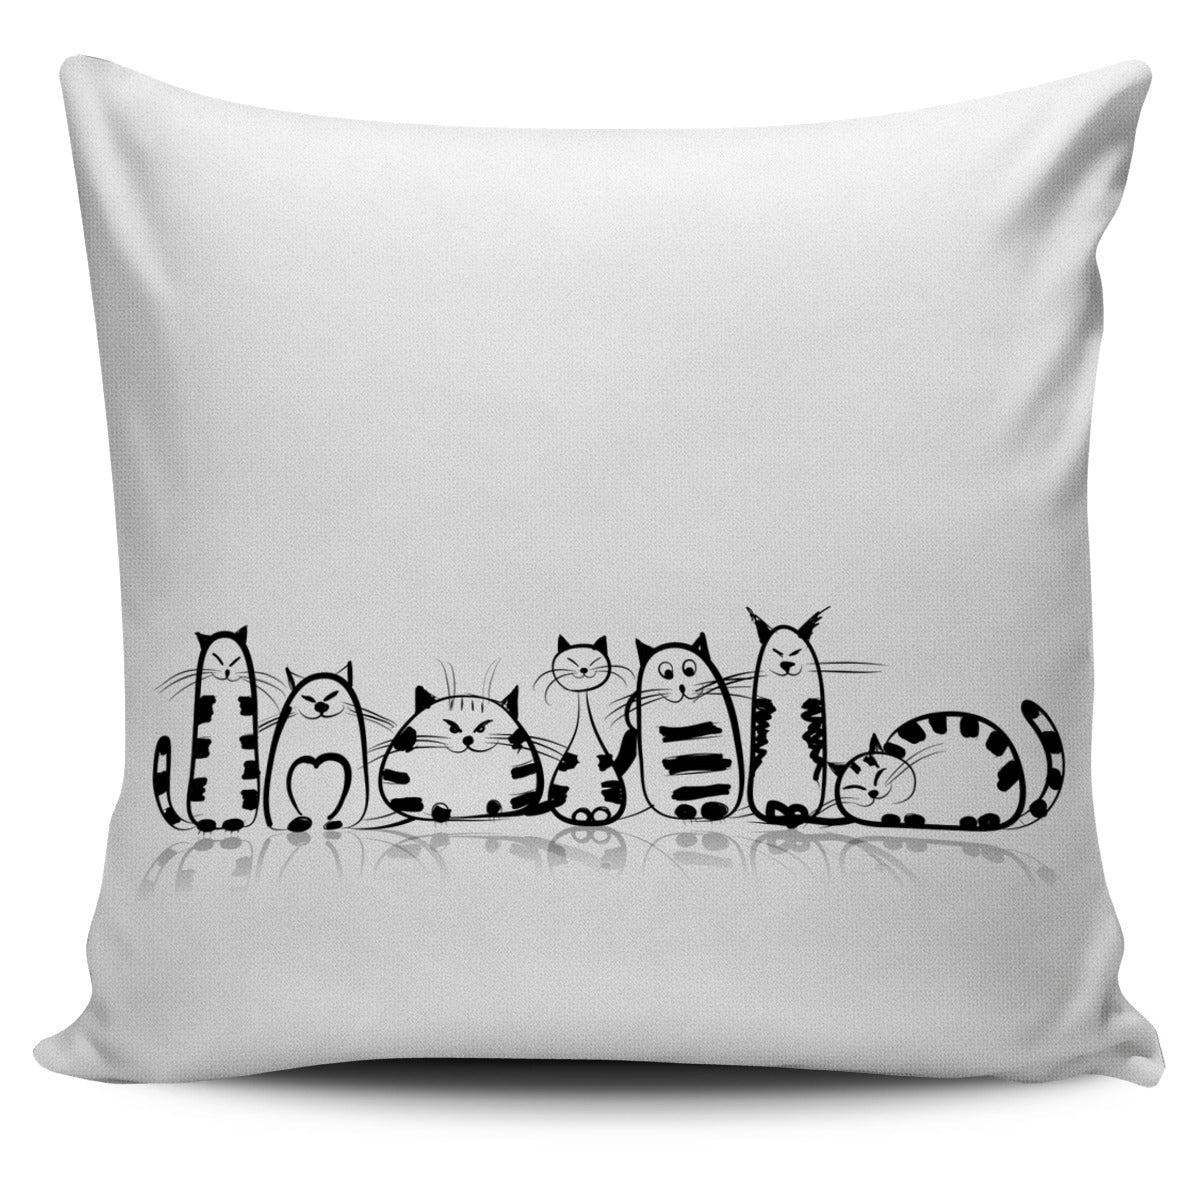 Funny Cat I Pillow Covers - Hello Moa